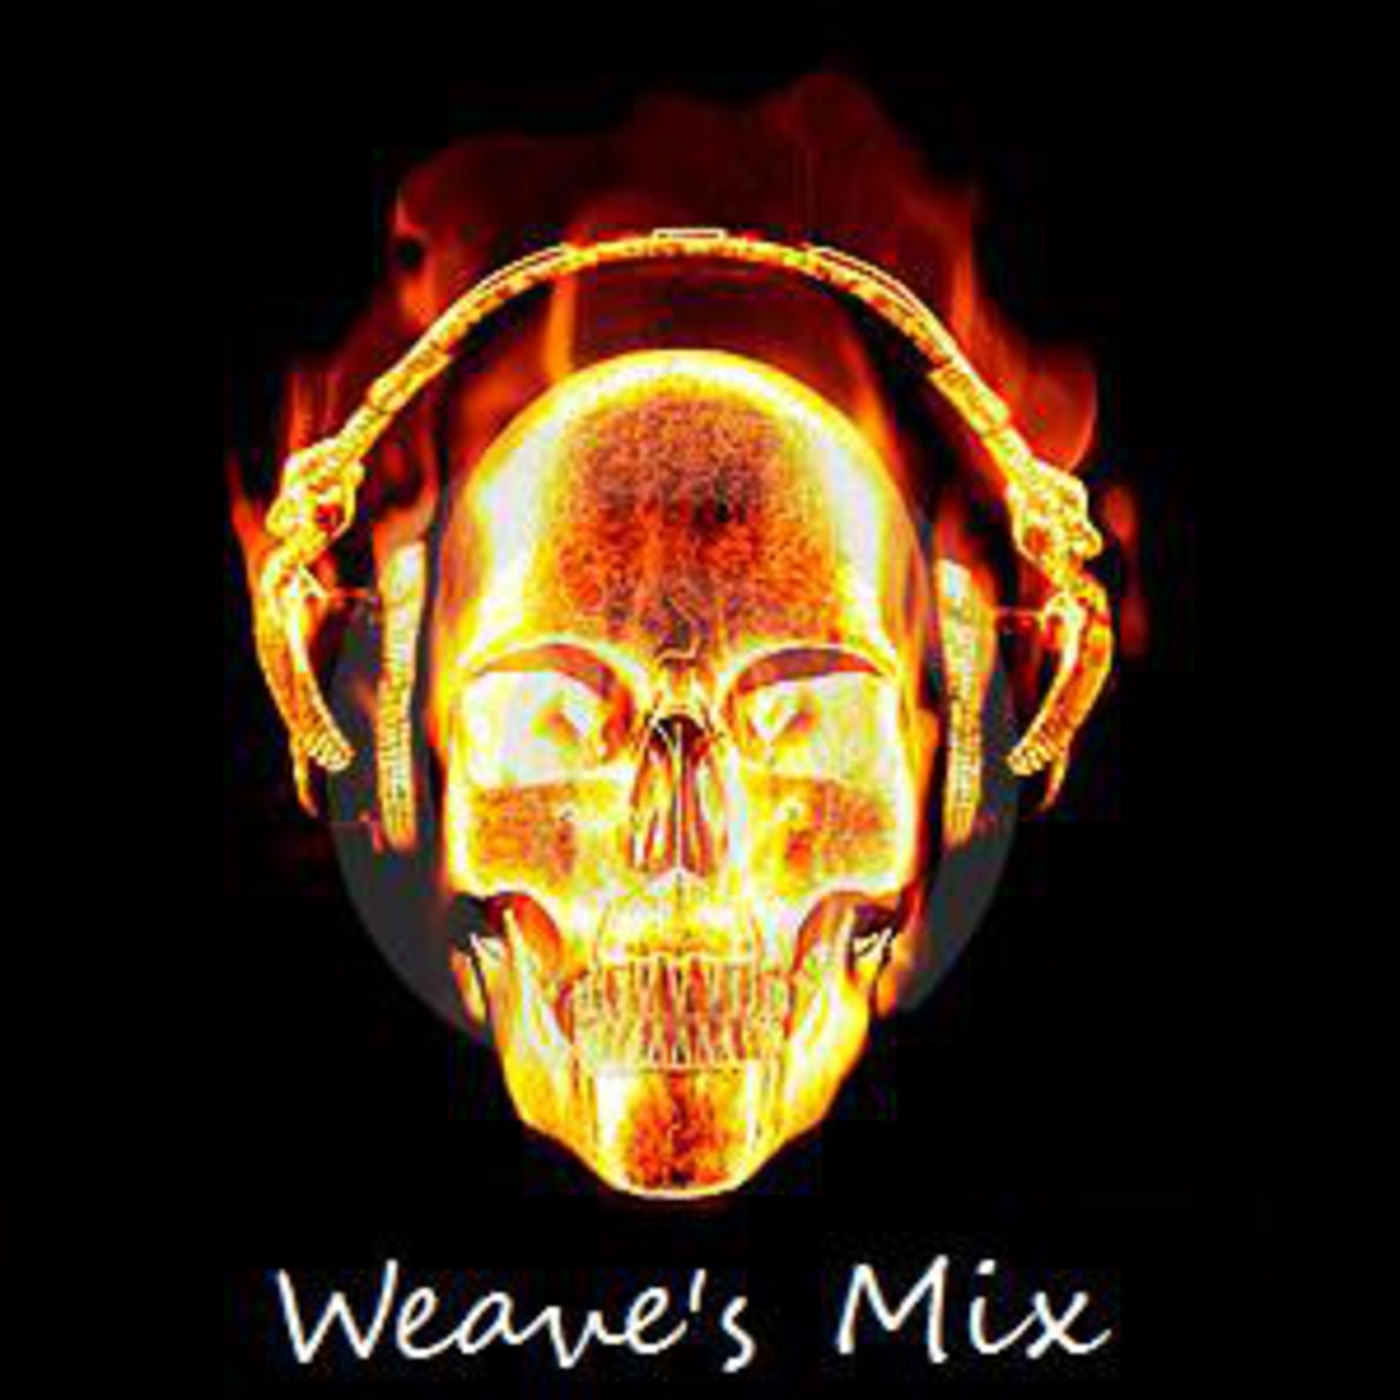 Weave's Mix